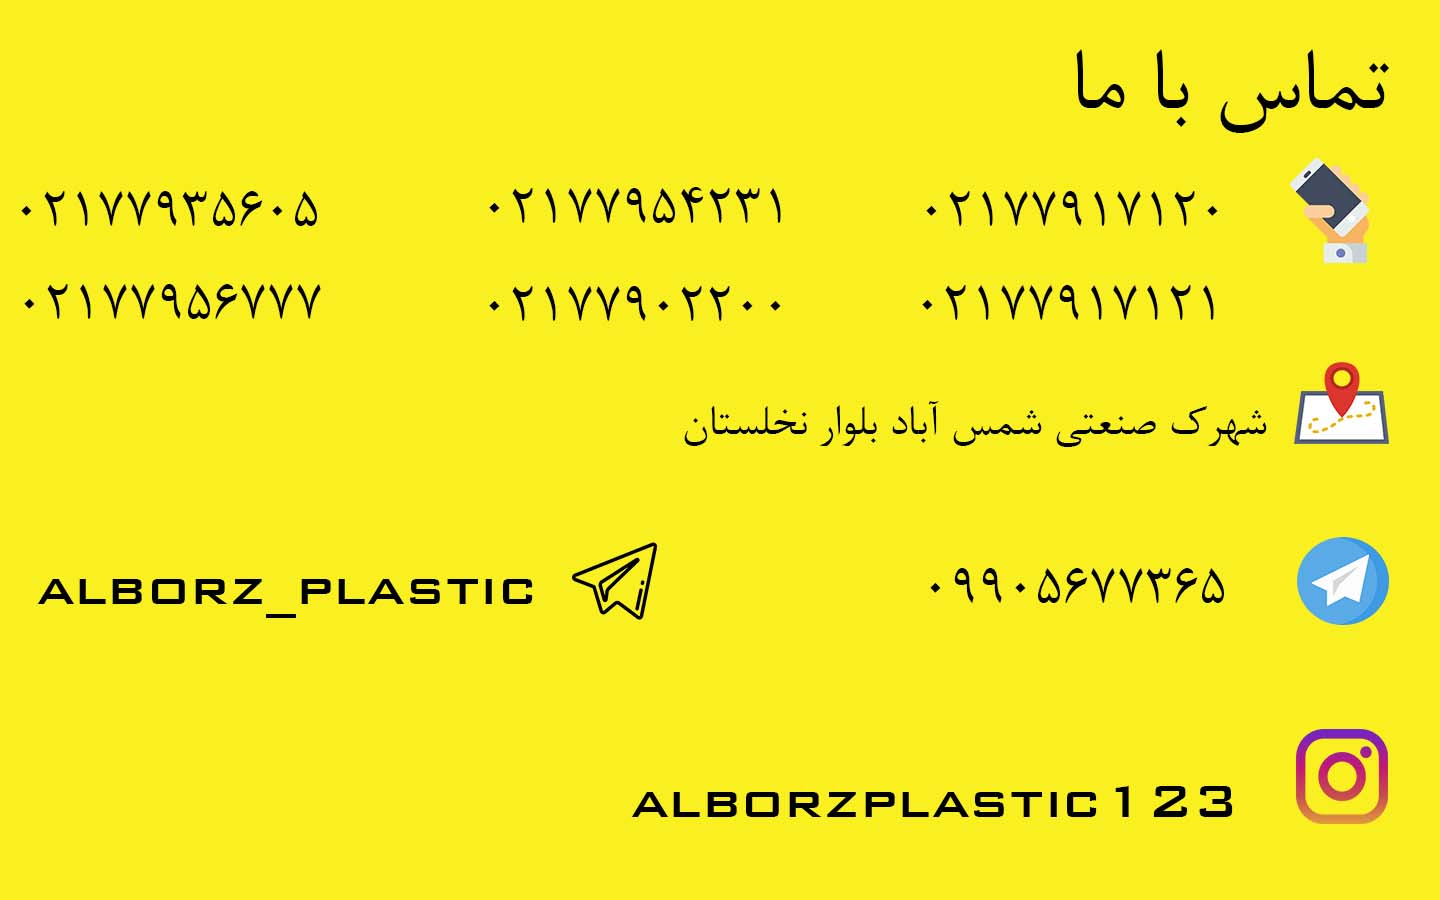 contact alborz plastic